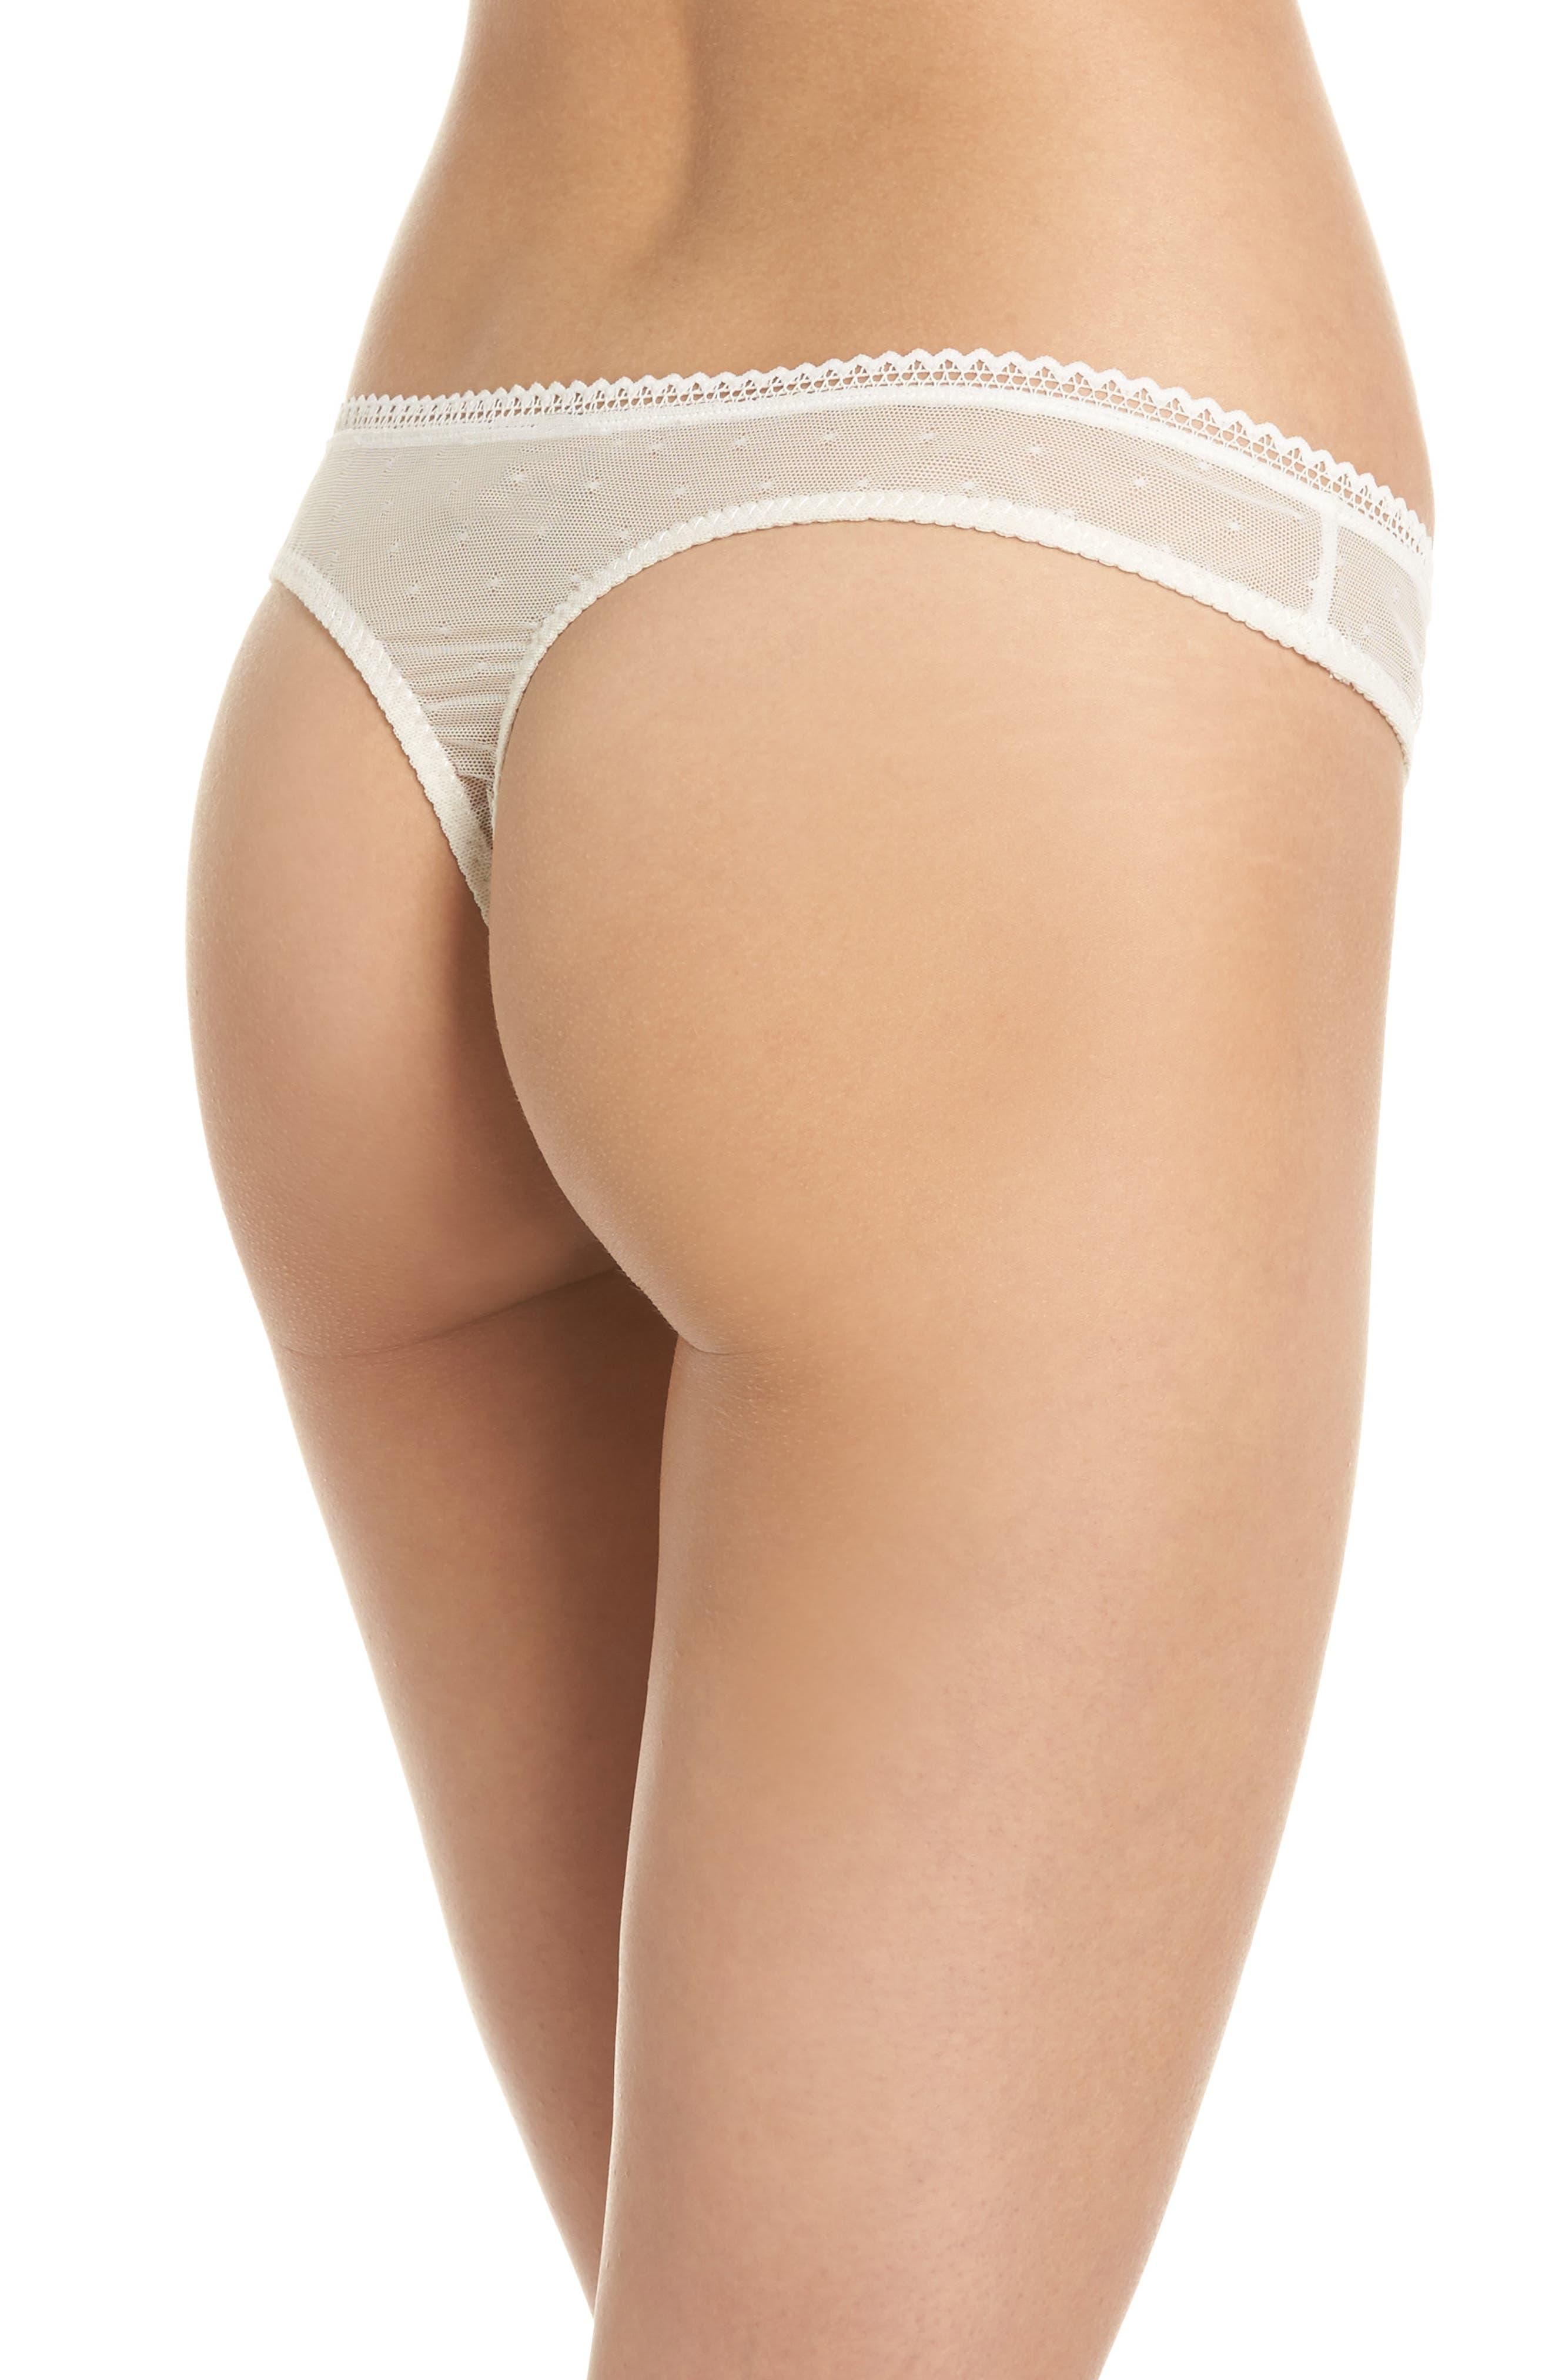 Thistle & Spire All Wrapped Up Thong,                             Alternate thumbnail 6, color,